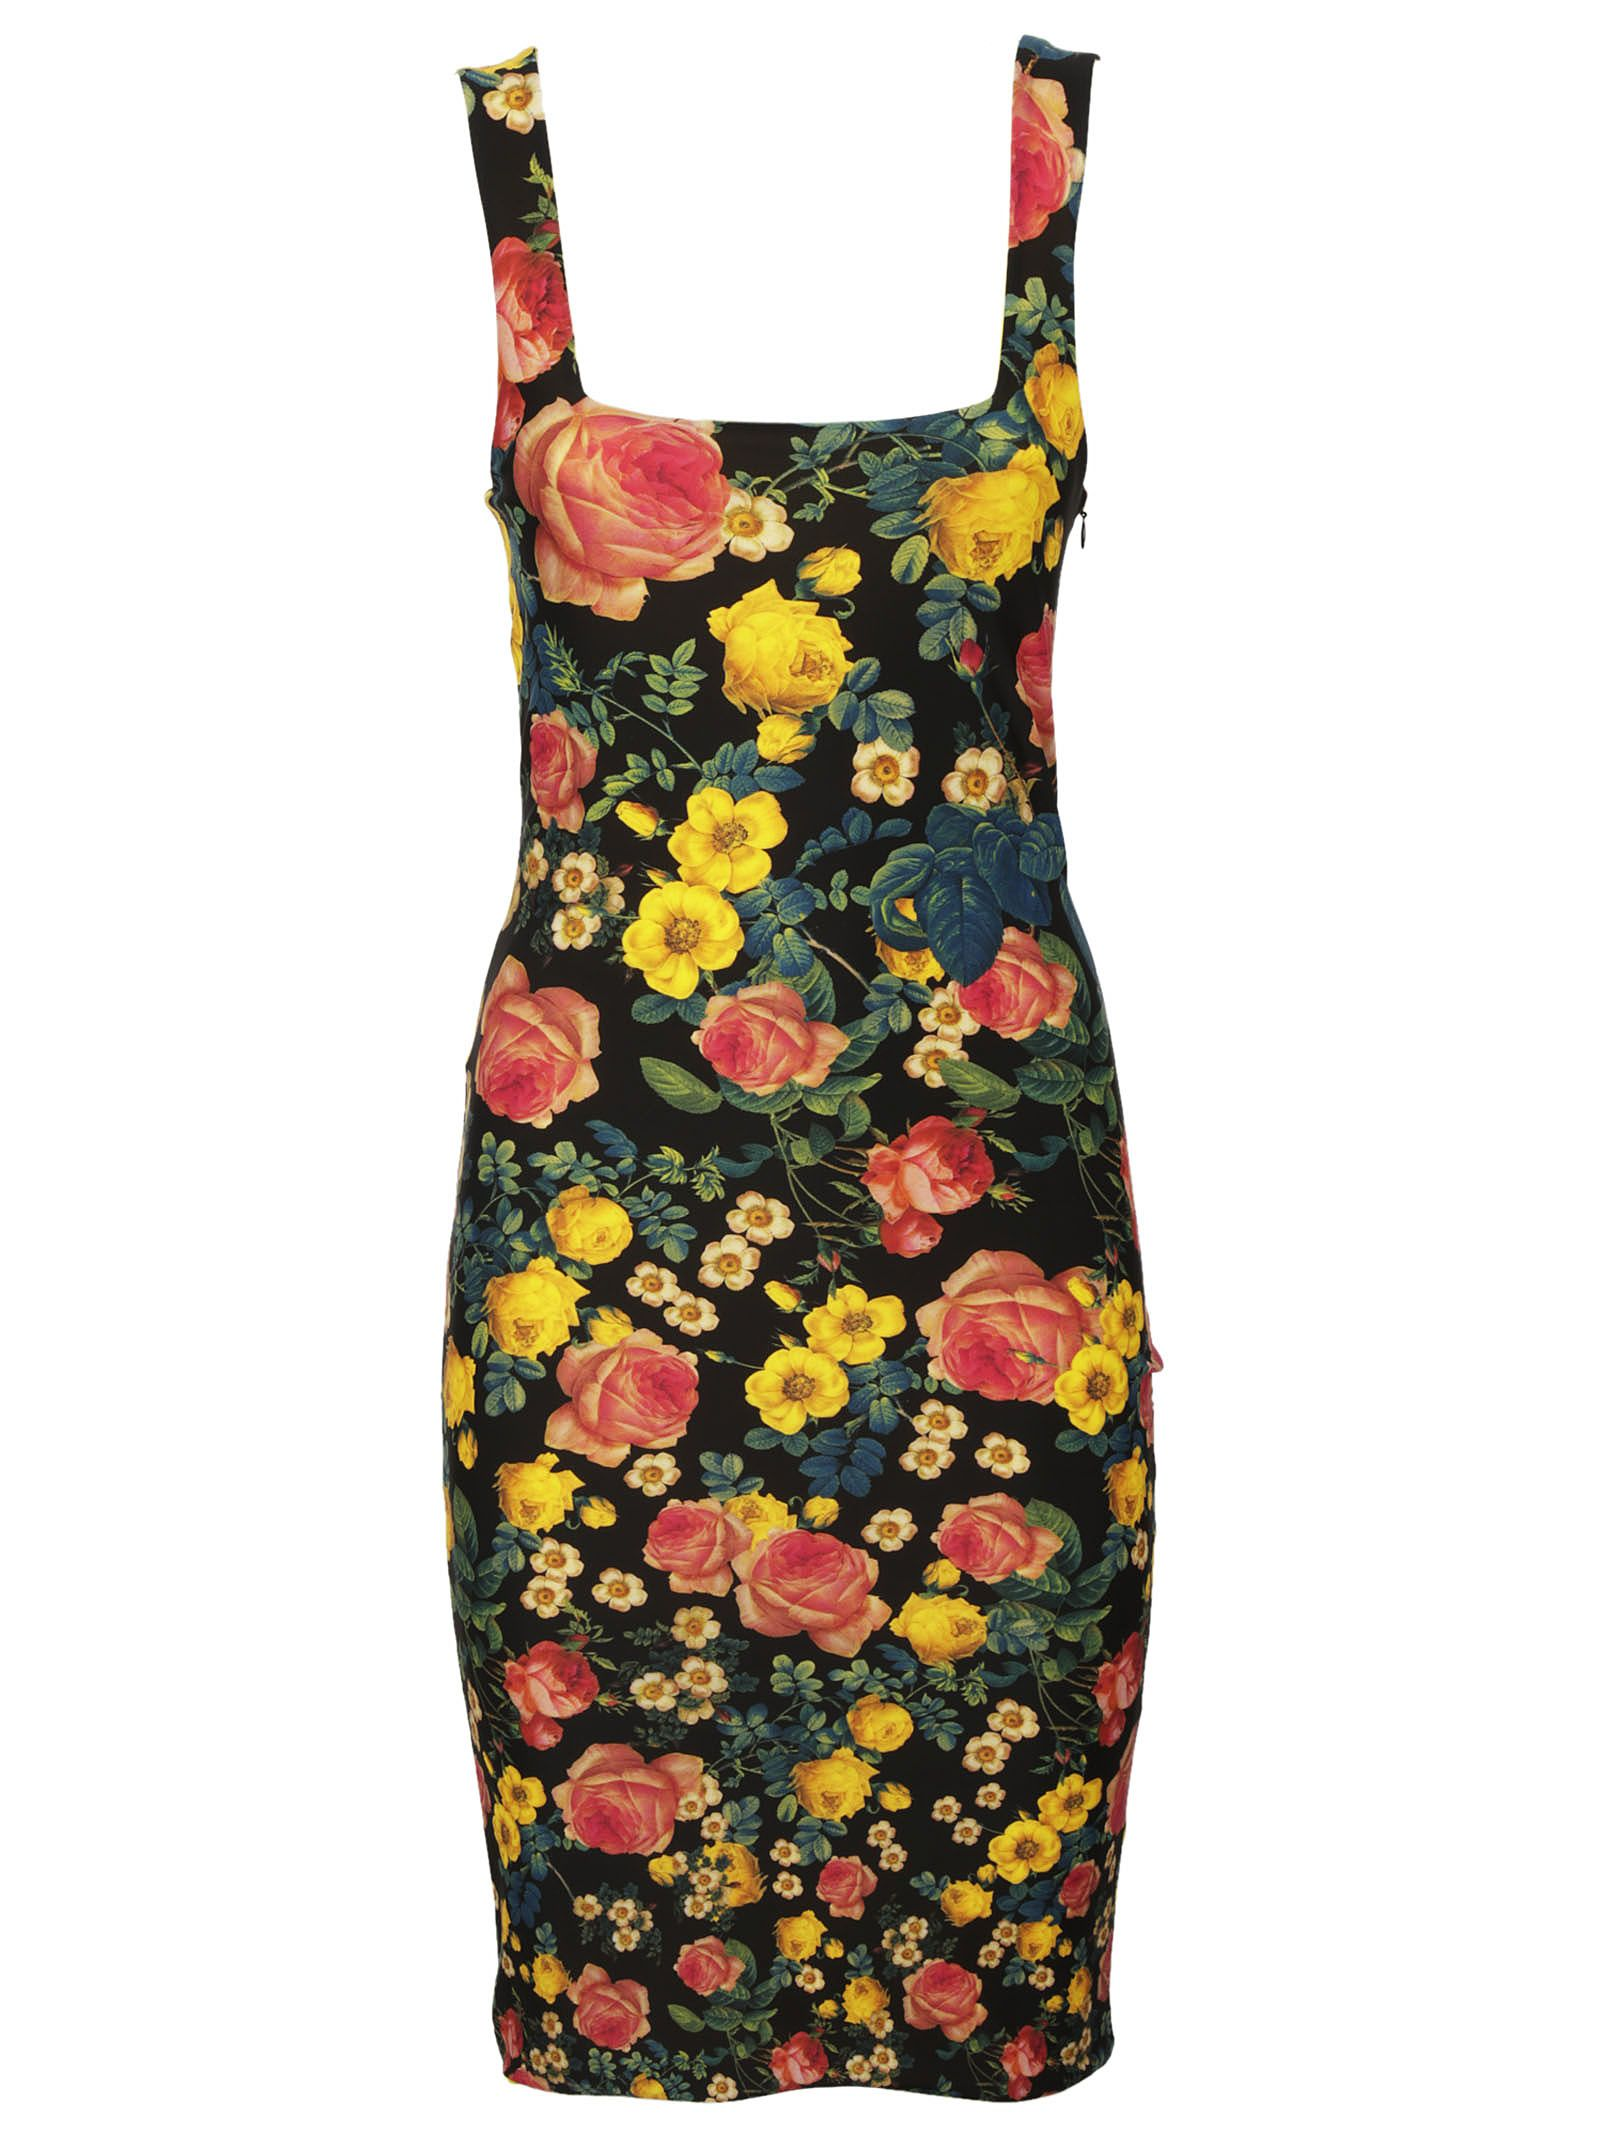 Fausto Puglisi Floral Dress